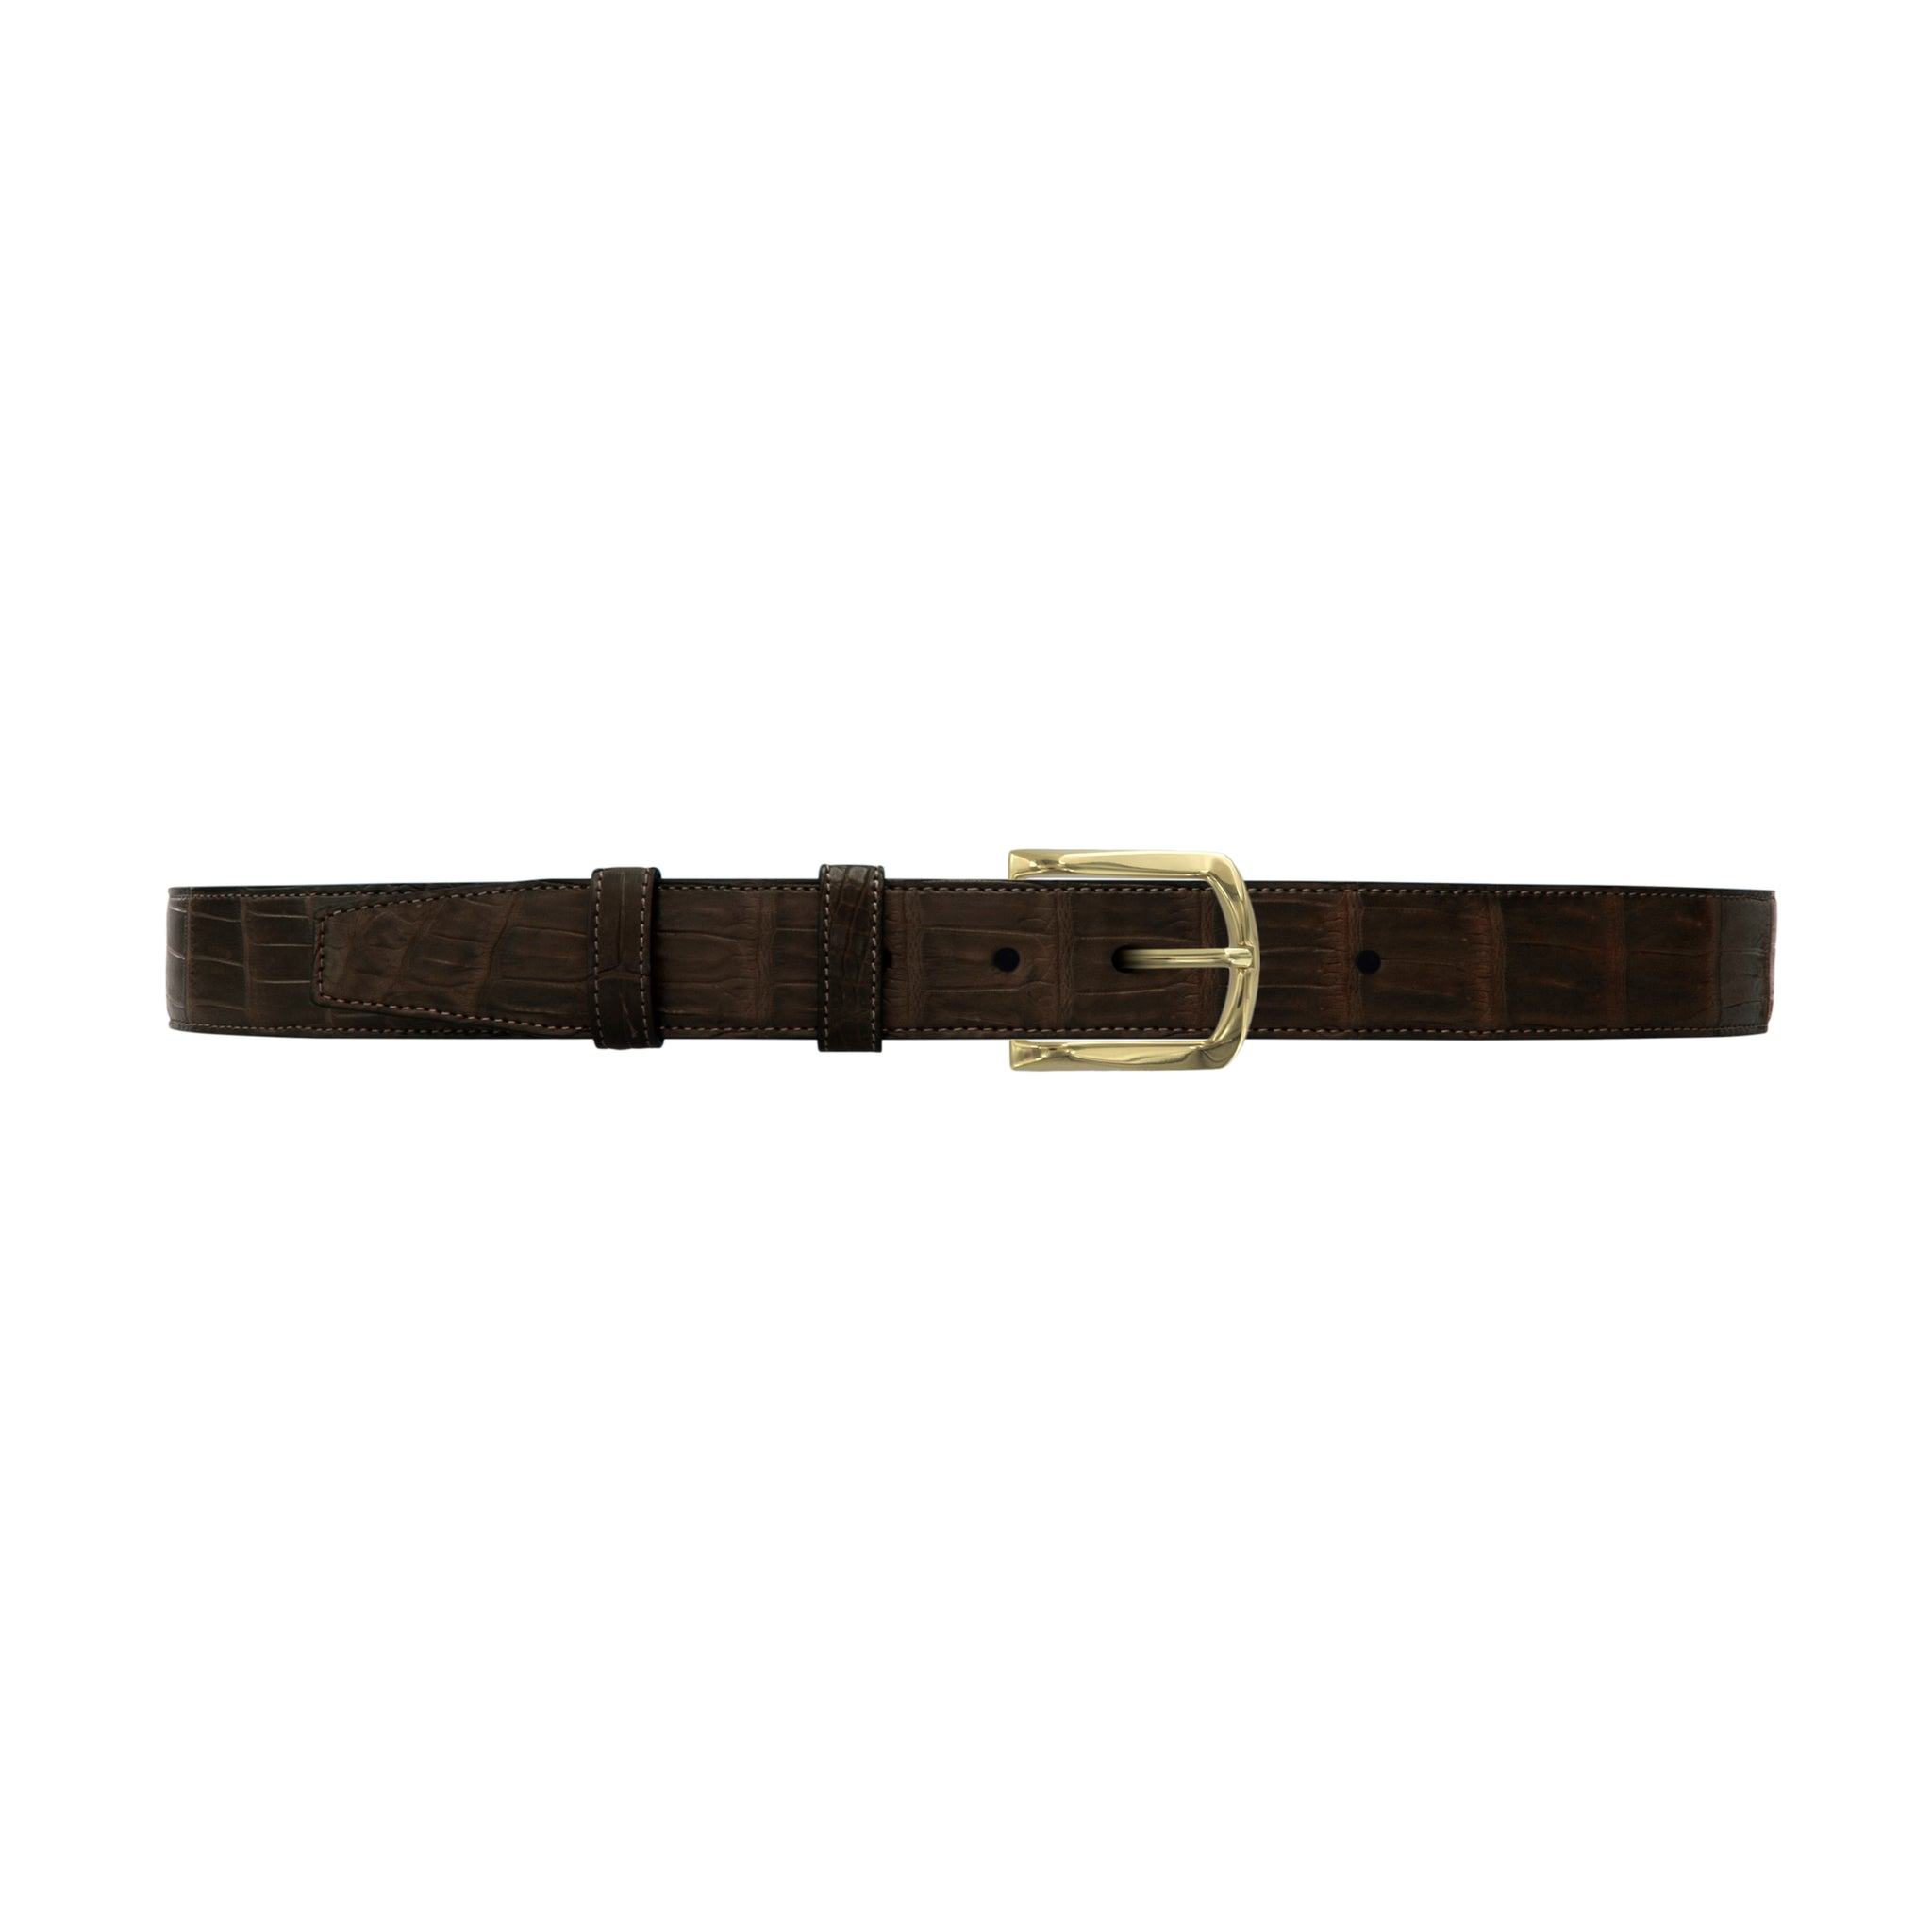 "1 1/4"" Espresso Classic Belt with Sutton Dress Buckle in Brass"